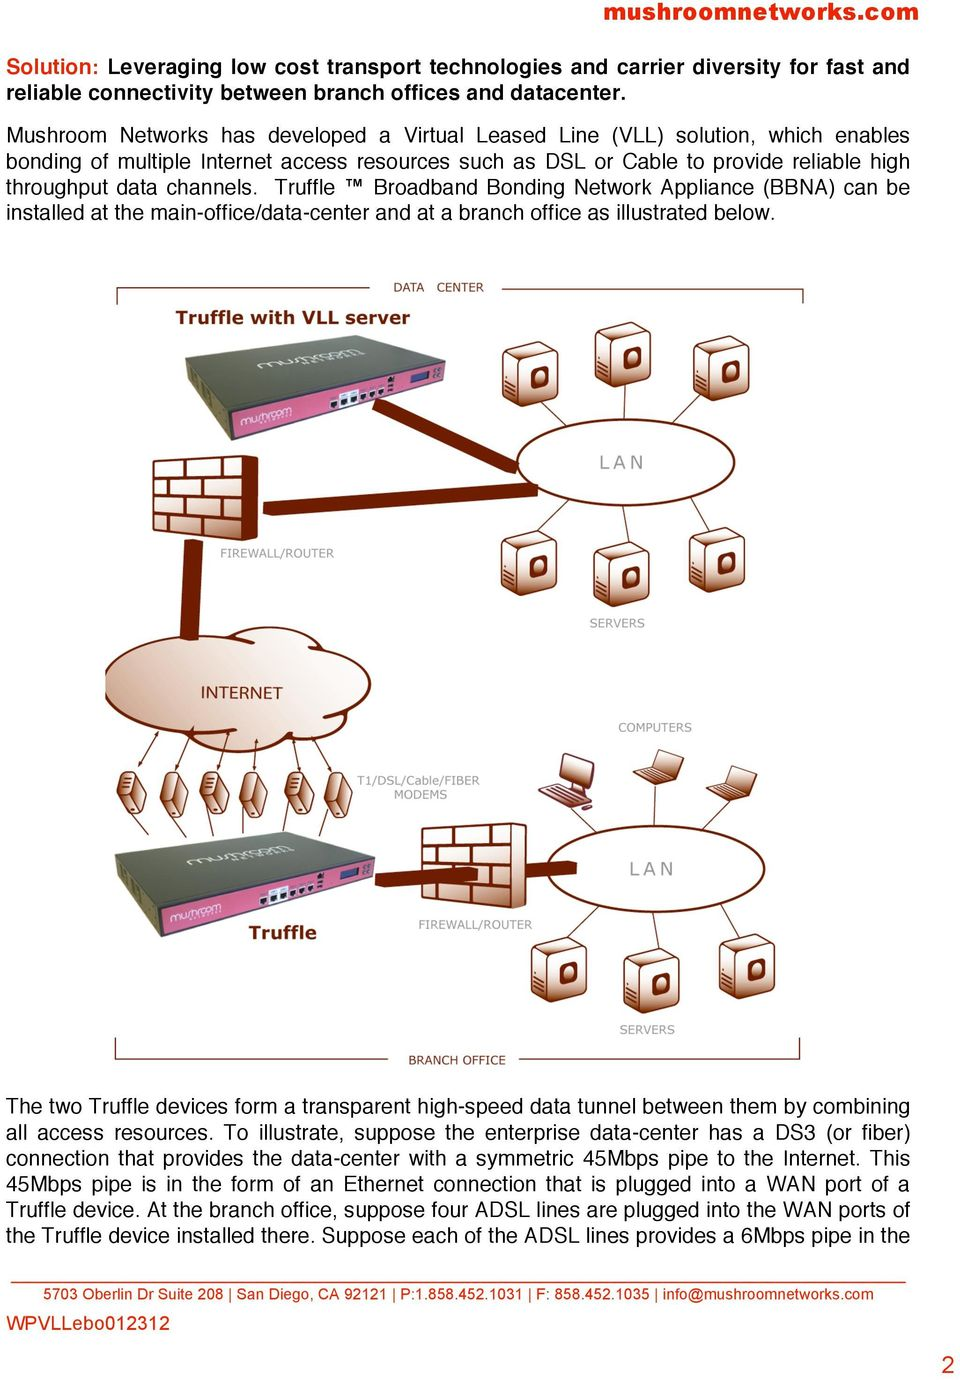 channels. Truffle Broadband Bonding Network Appliance (BBNA) can be installed at the main-office/data-center and at a branch office as illustrated below.